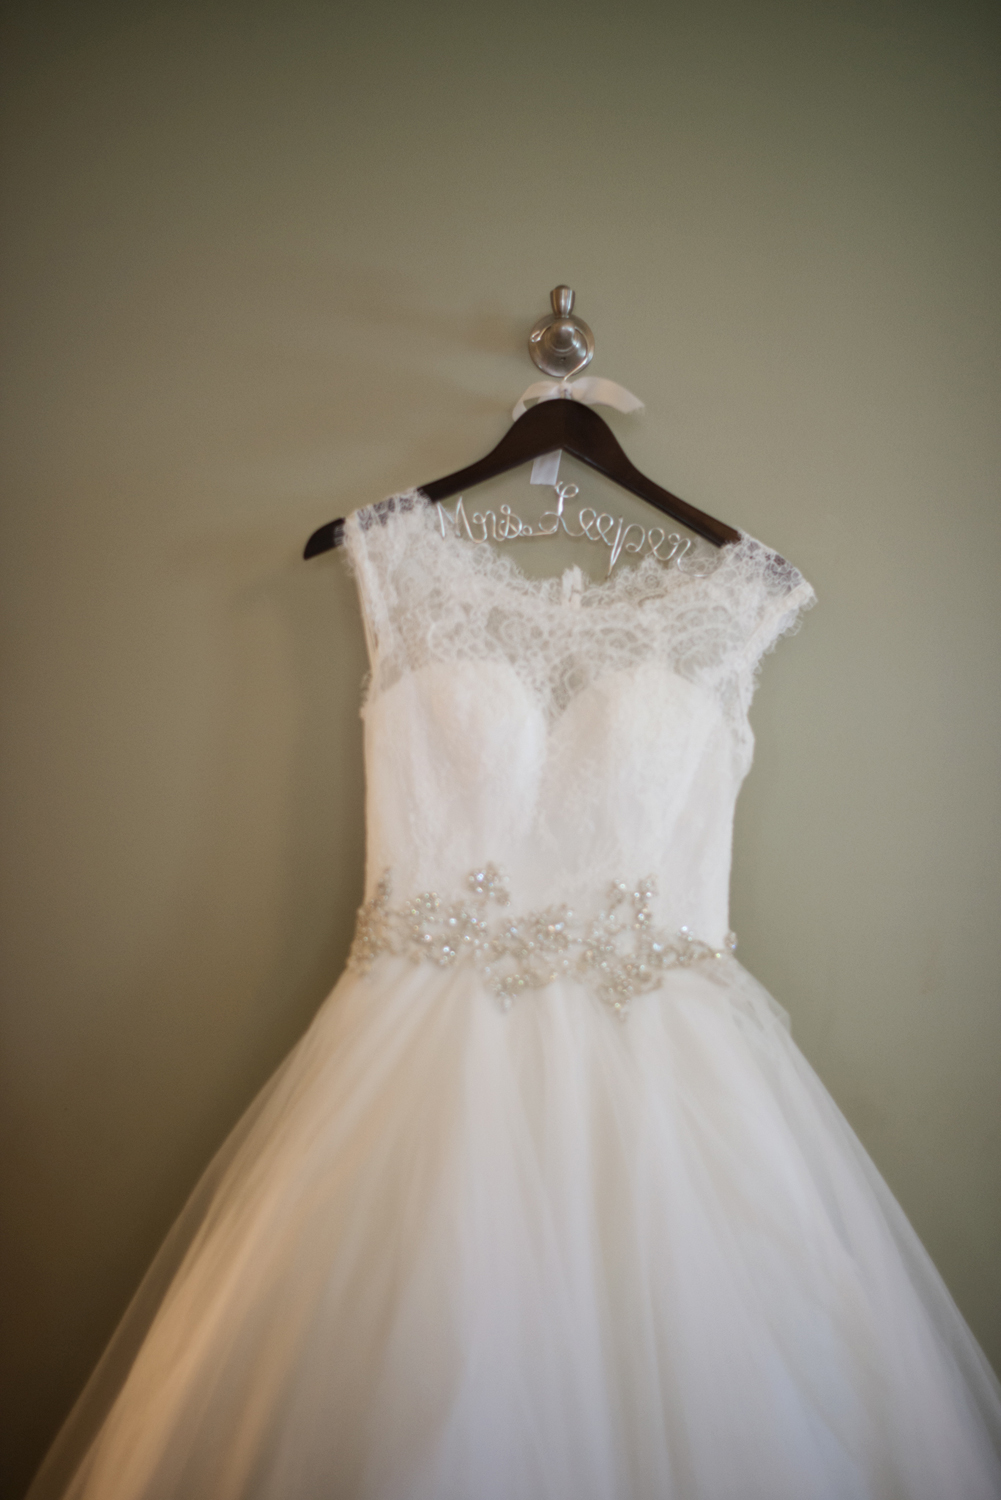 Classic wedding gown picture | Portsmouth Woman's Club in Virginia